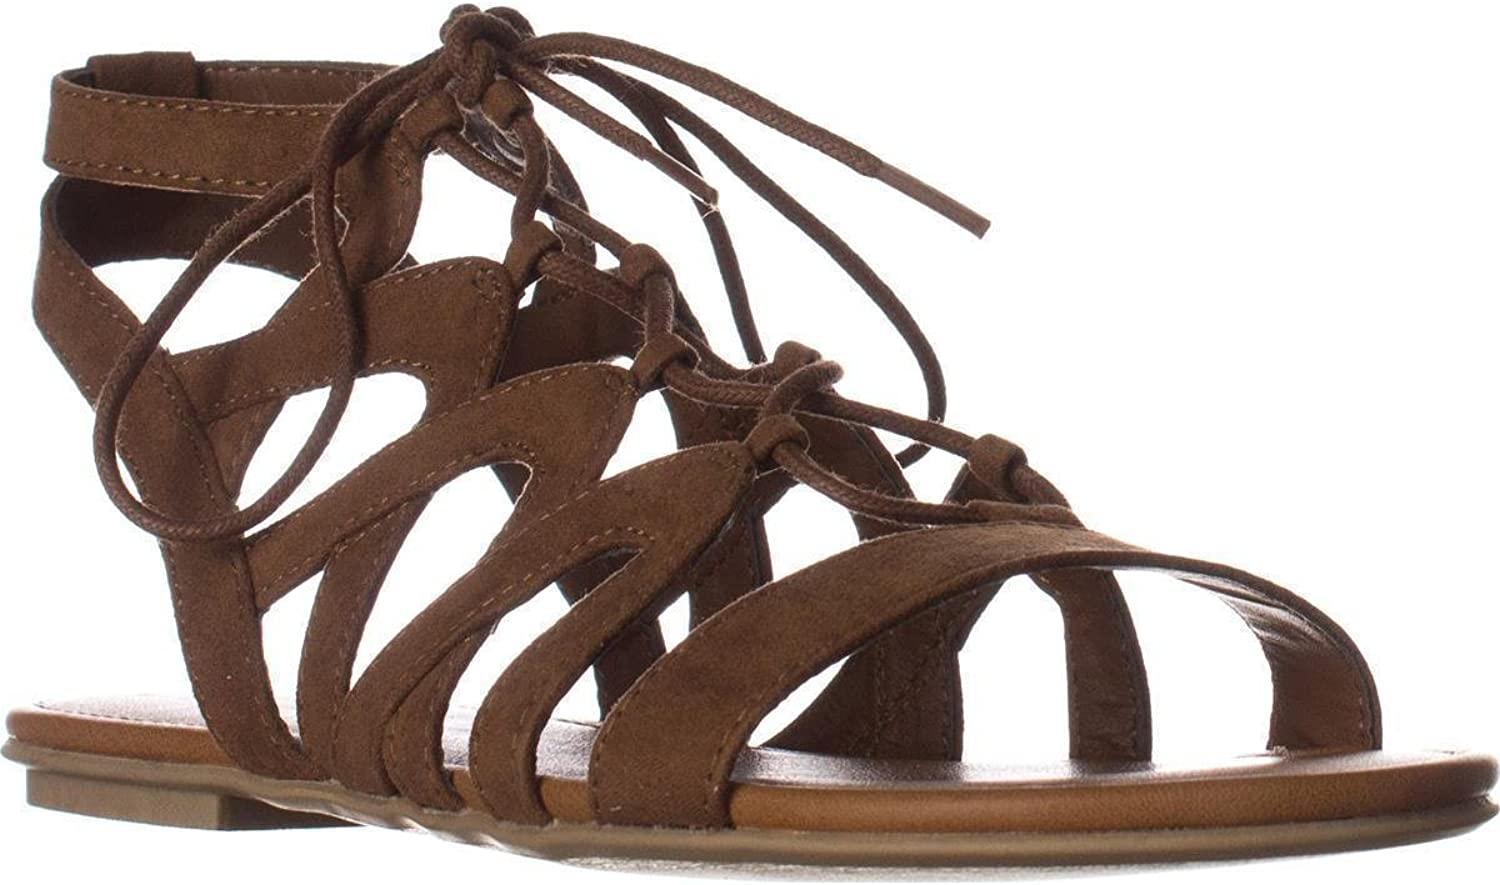 American Rag Womens Marlie Open Toe Casual Gladiator Sandals, Maple, Size 9.5